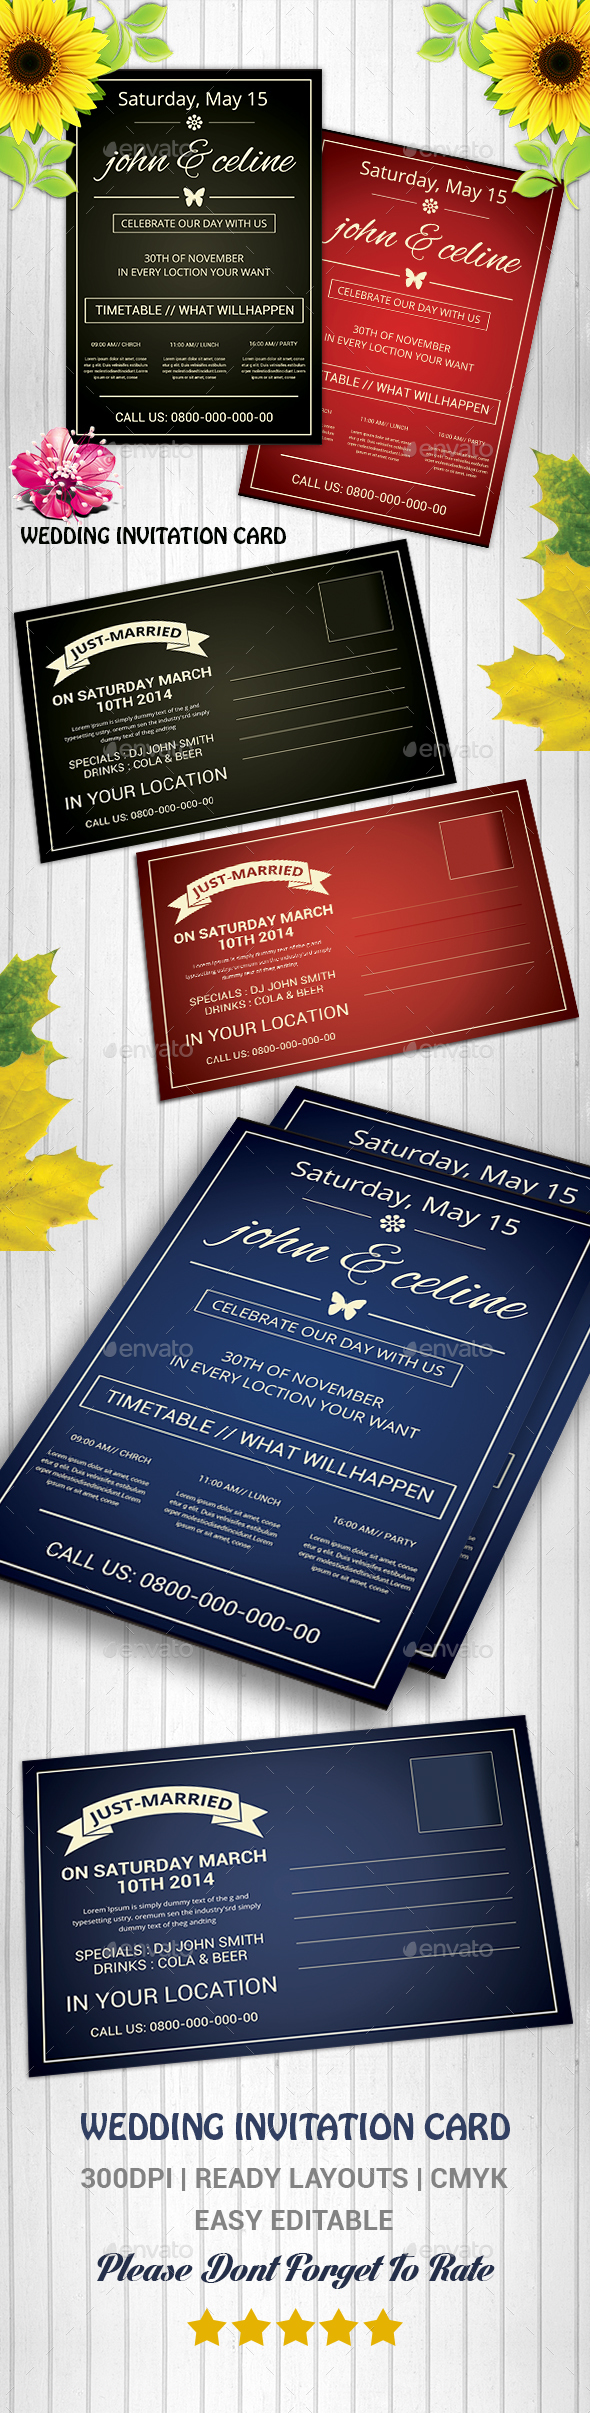 Wedding Invitation Card - Cards & Invites Print Templates